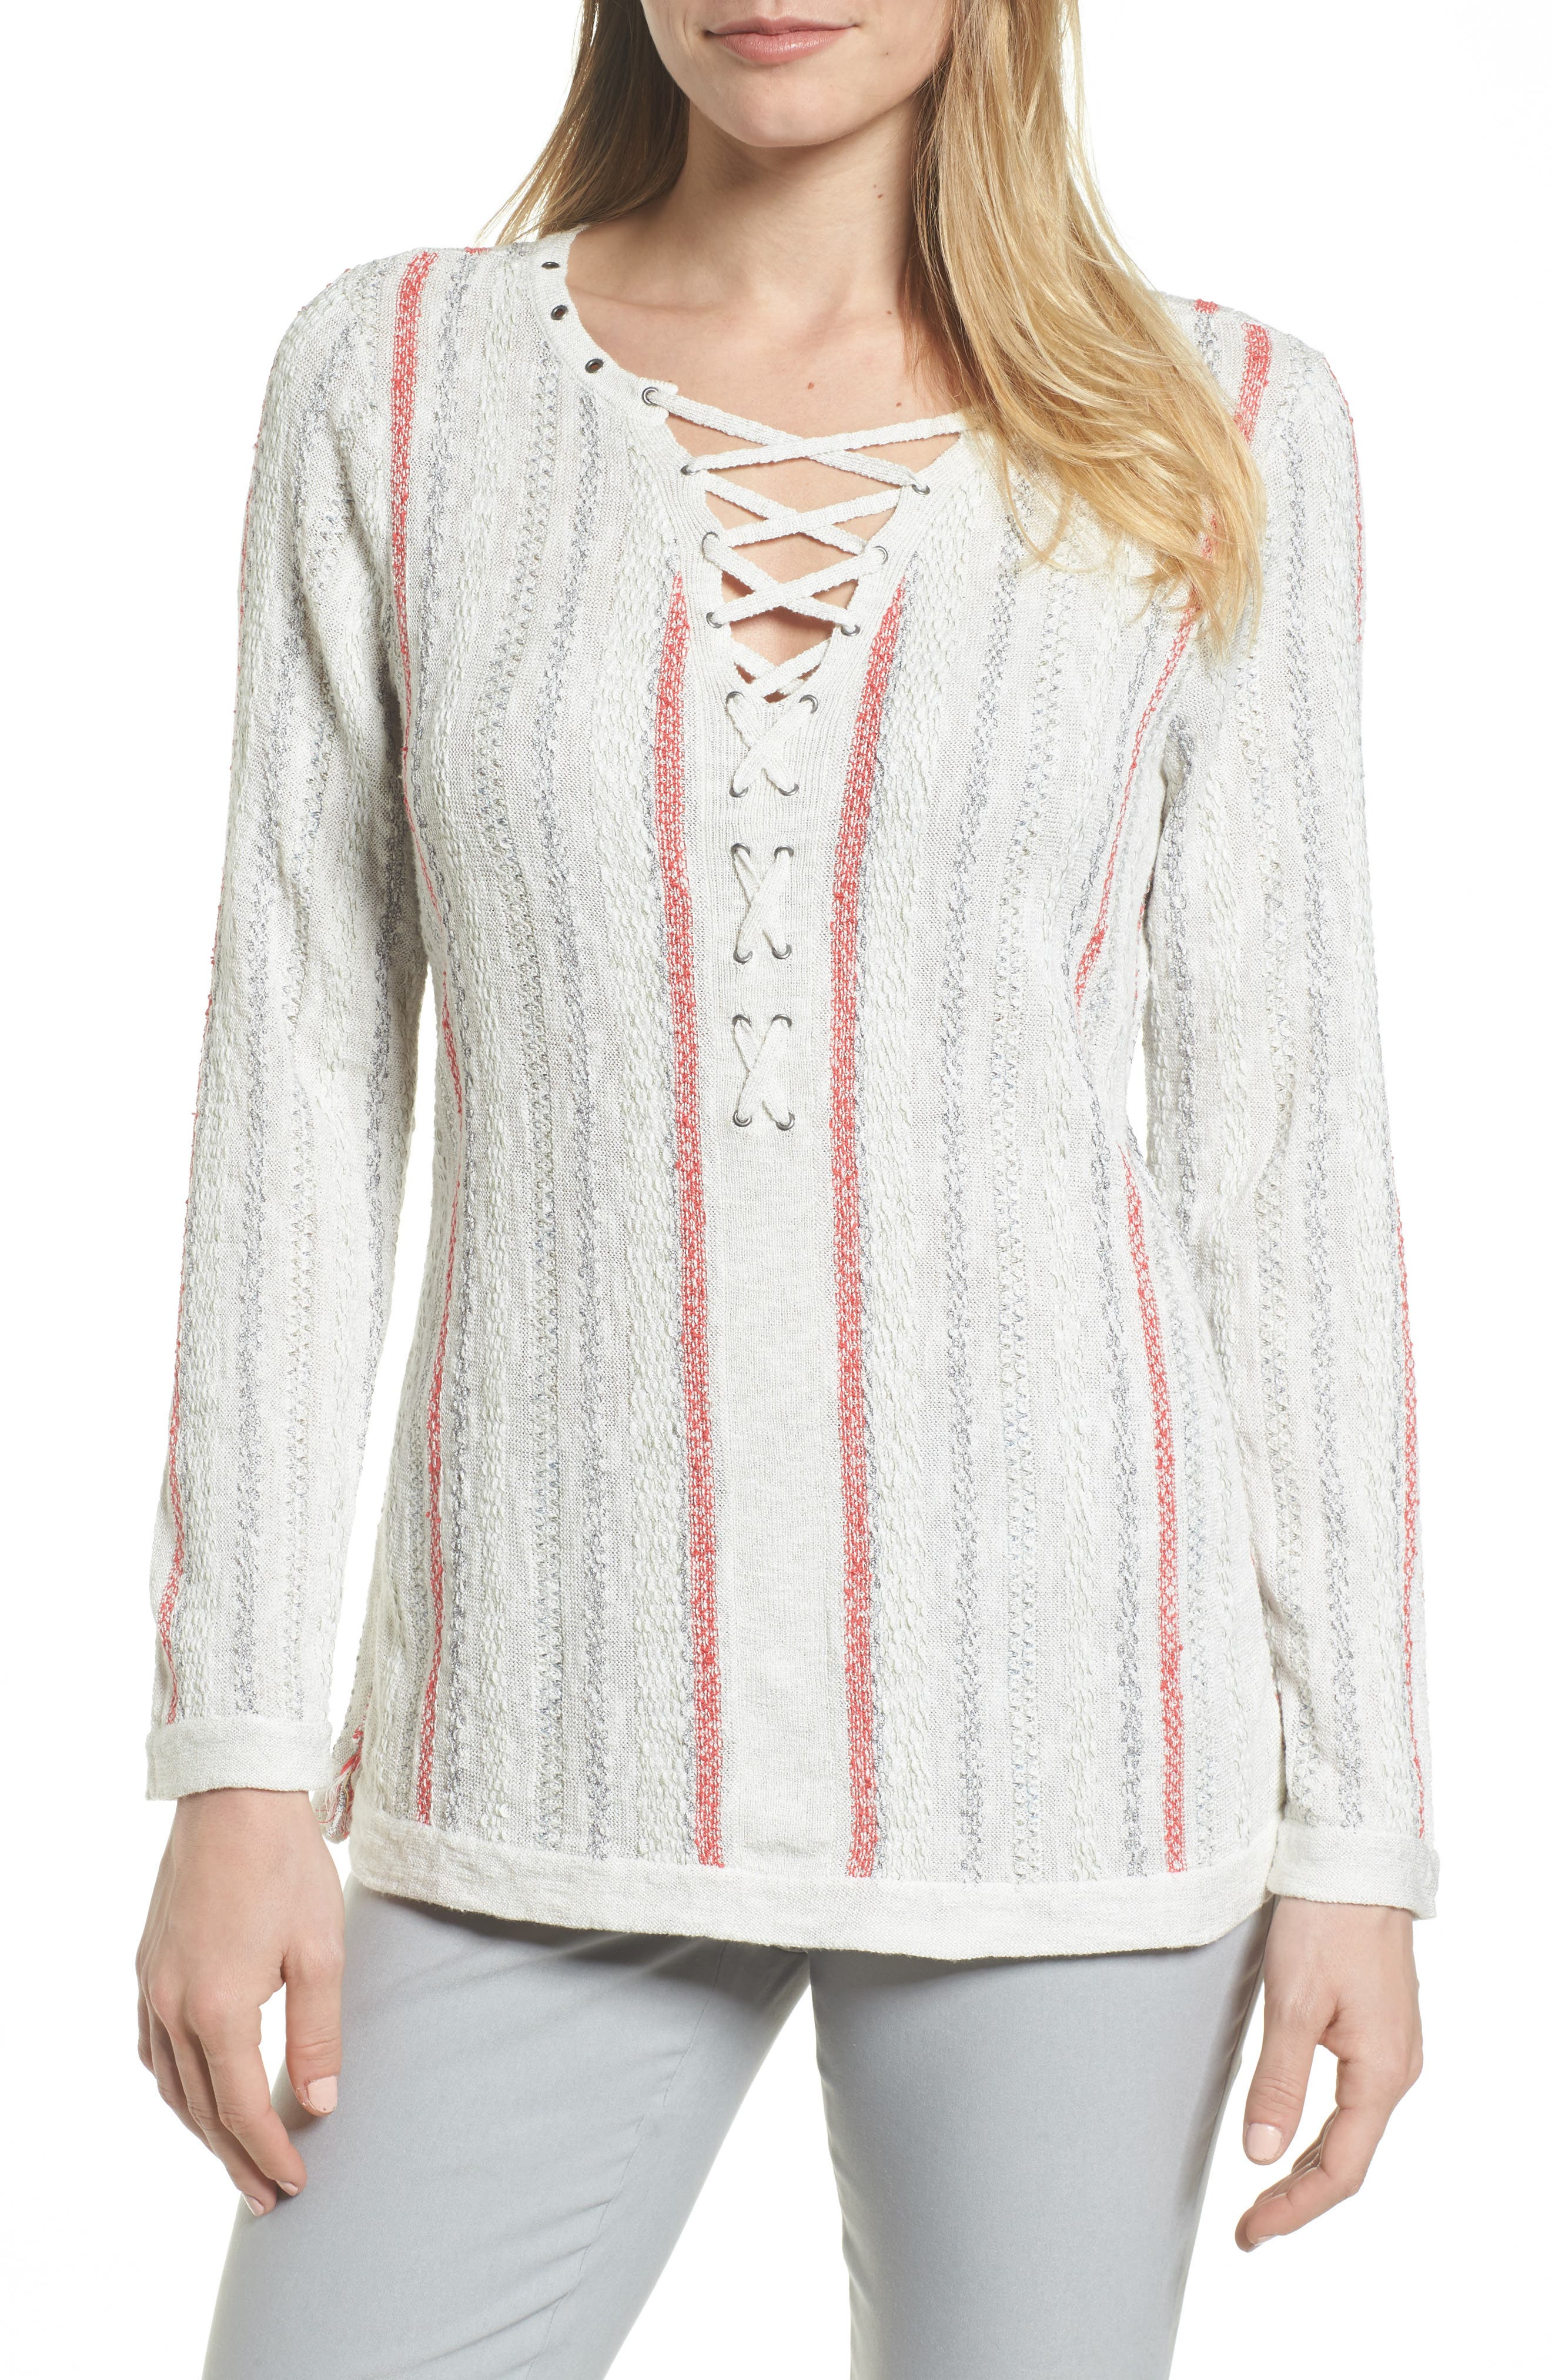 NIC + ZOE Cross Country Lace-Up Top,                             Main thumbnail 1, color,                             290